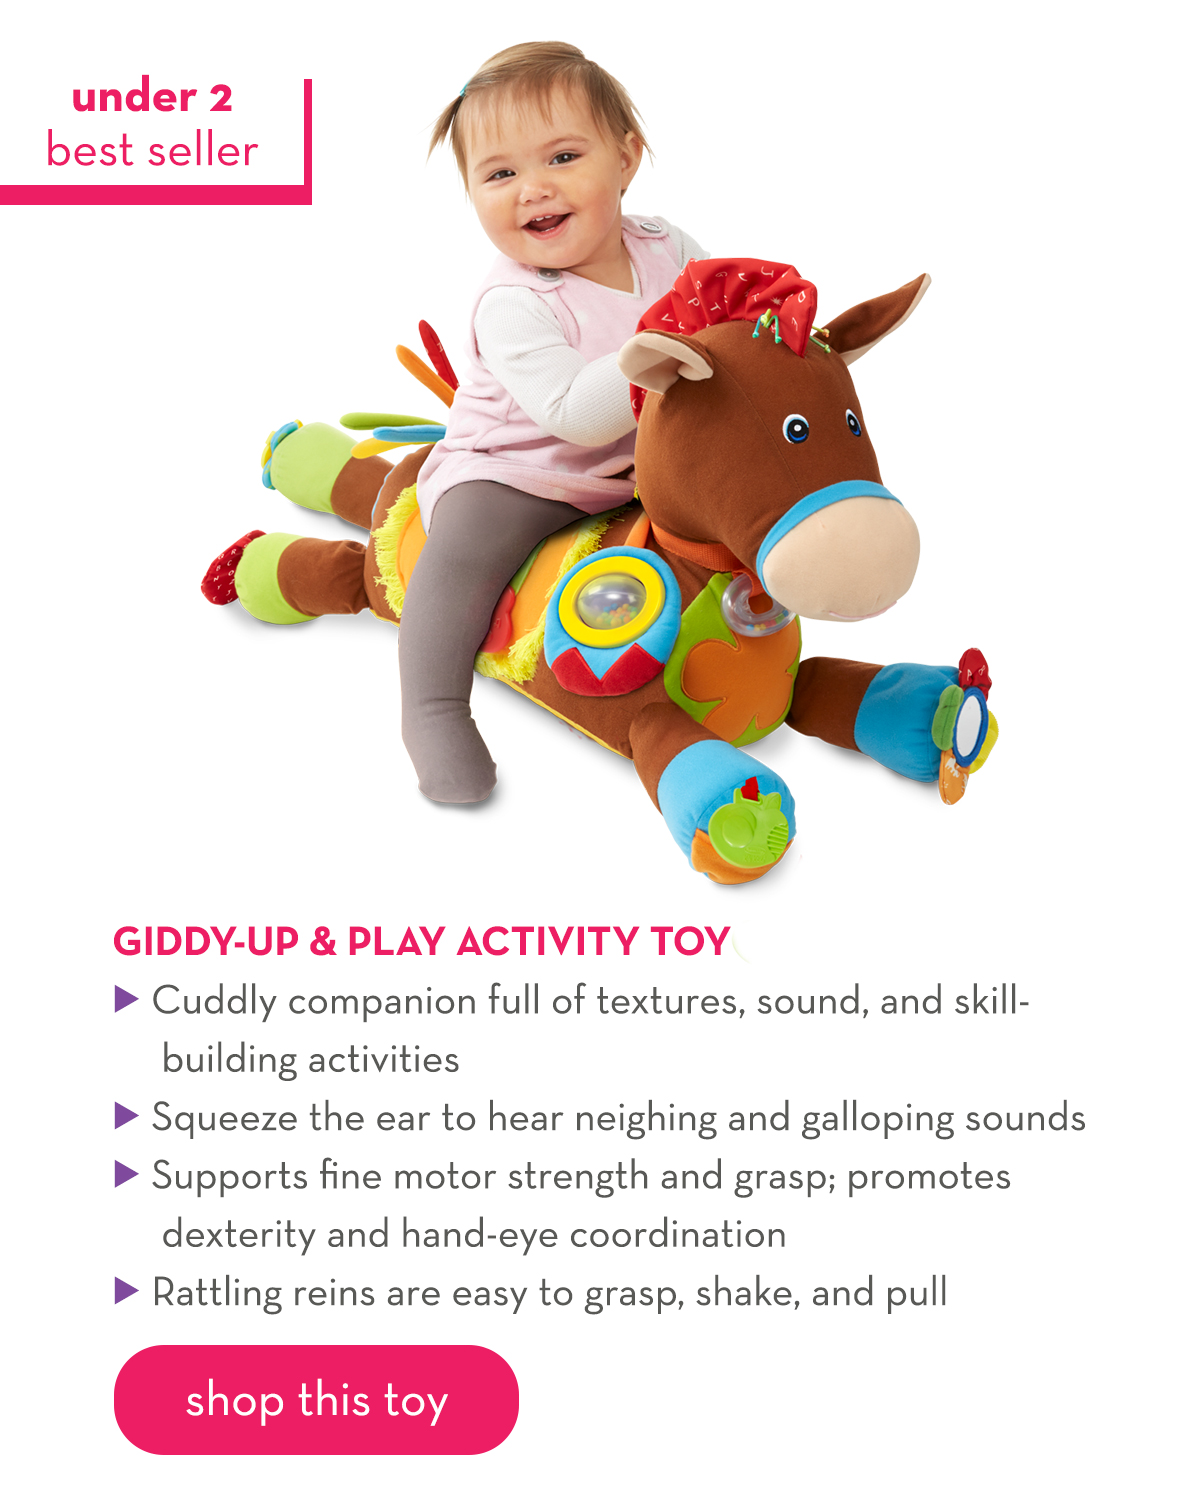 Under 2 Best Seller - Giddy-Up and Play Activity Toy